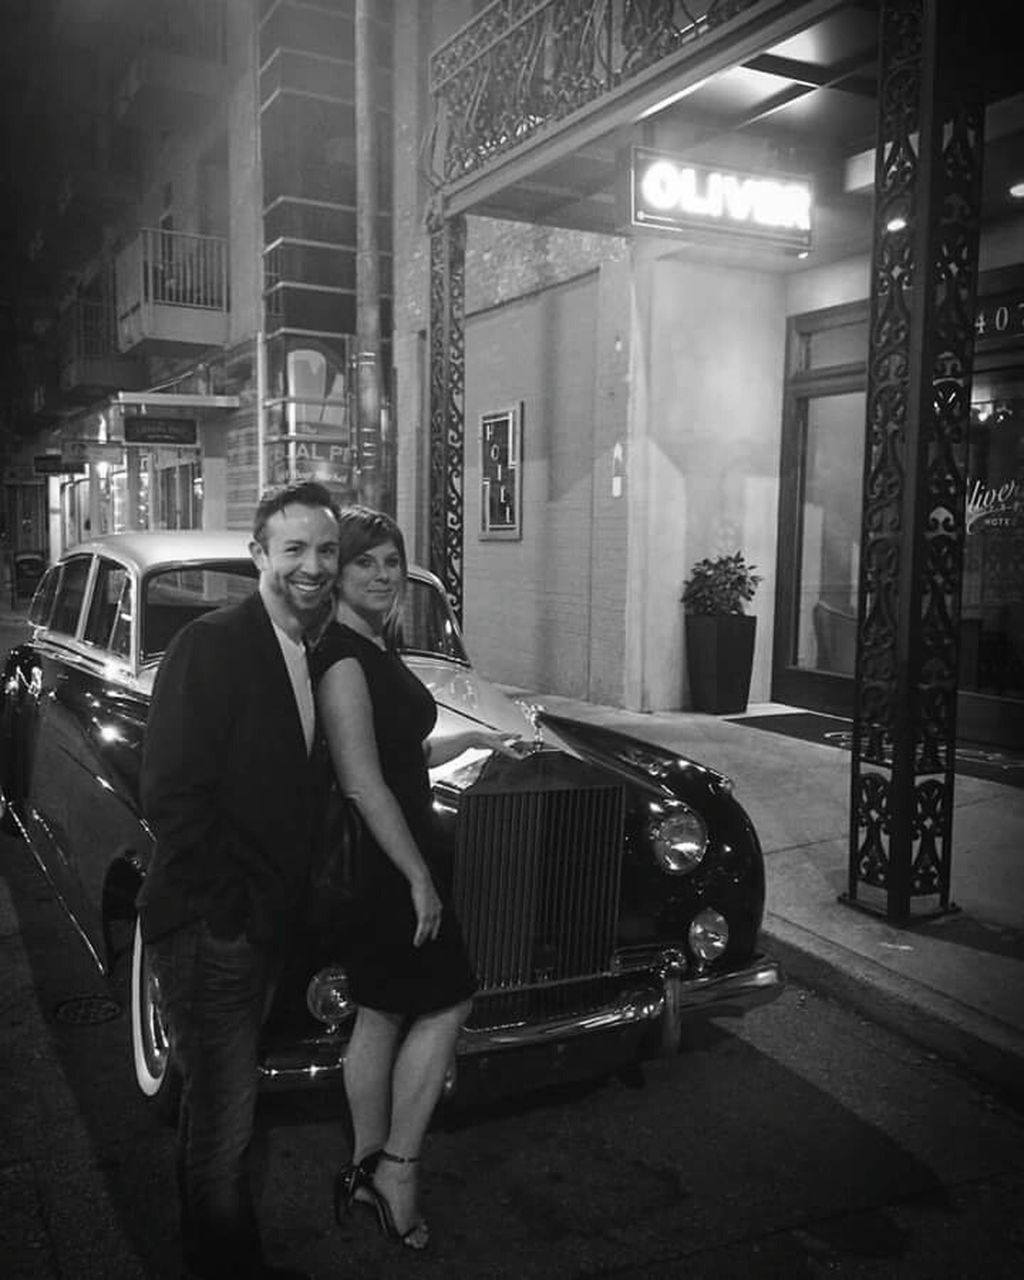 architecture, car, real people, lifestyles, built structure, one person, land vehicle, transportation, night, building exterior, full length, young adult, looking at camera, portrait, stationary, outdoors, young women, sitting, well-dressed, adult, people